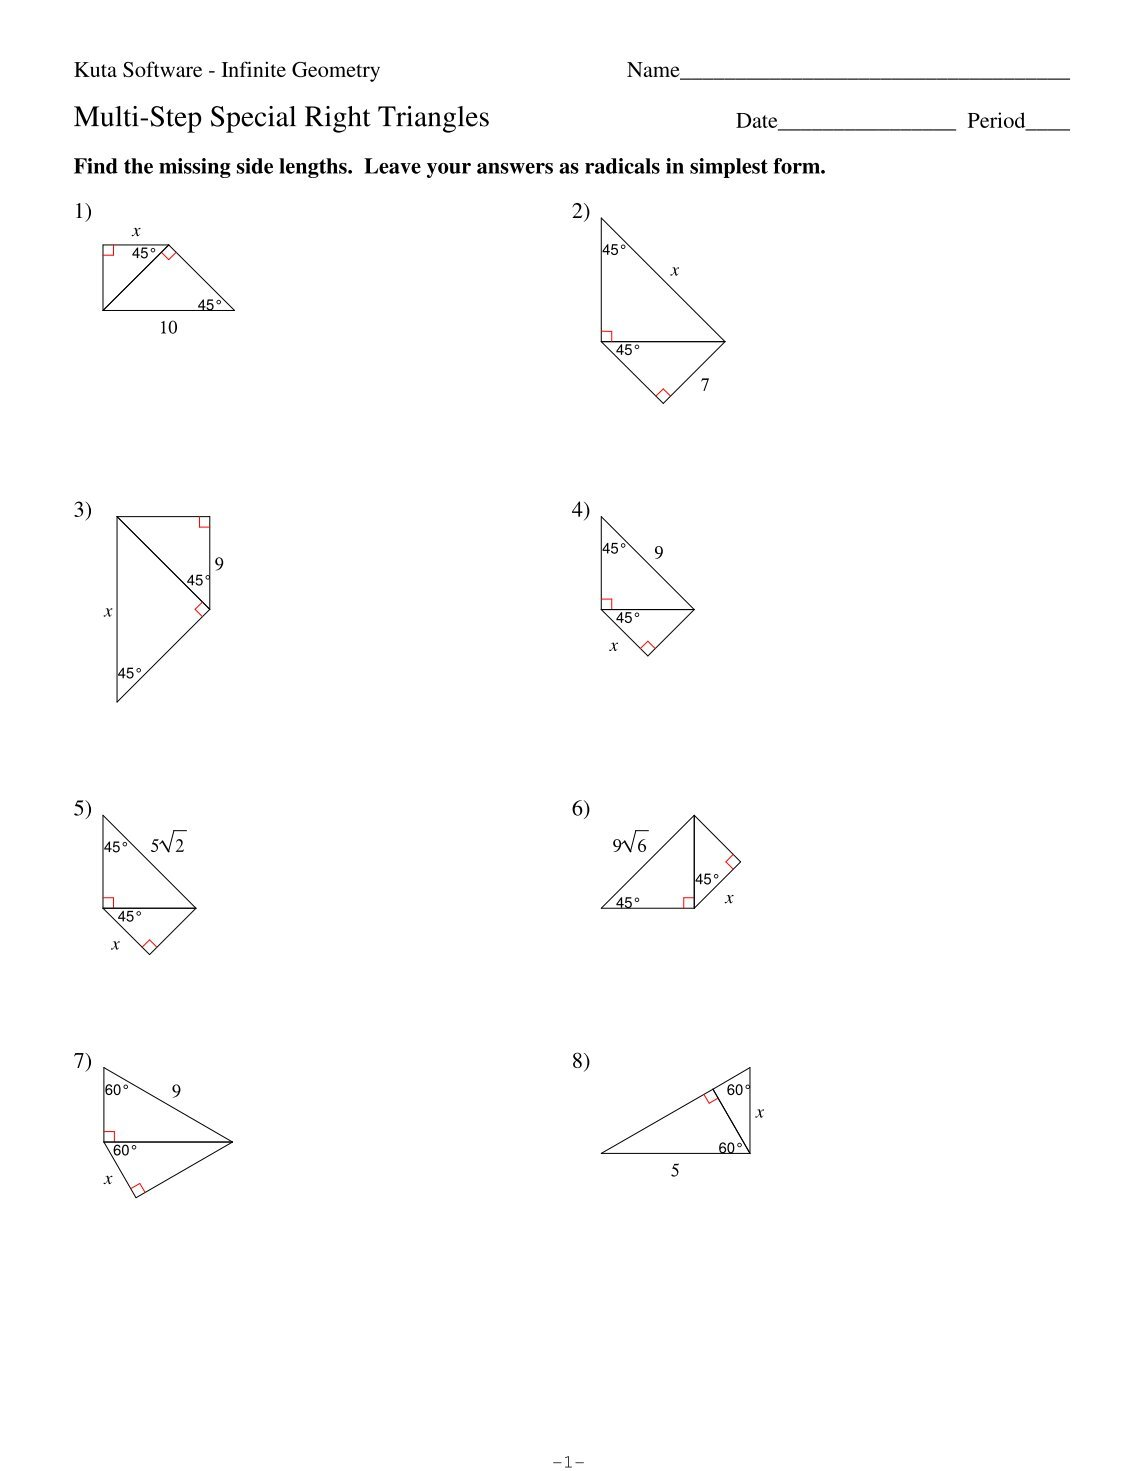 Special Right Triangles Worksheet Answers Kuta Templates and – Special Right Triangles 45 45 90 Worksheet